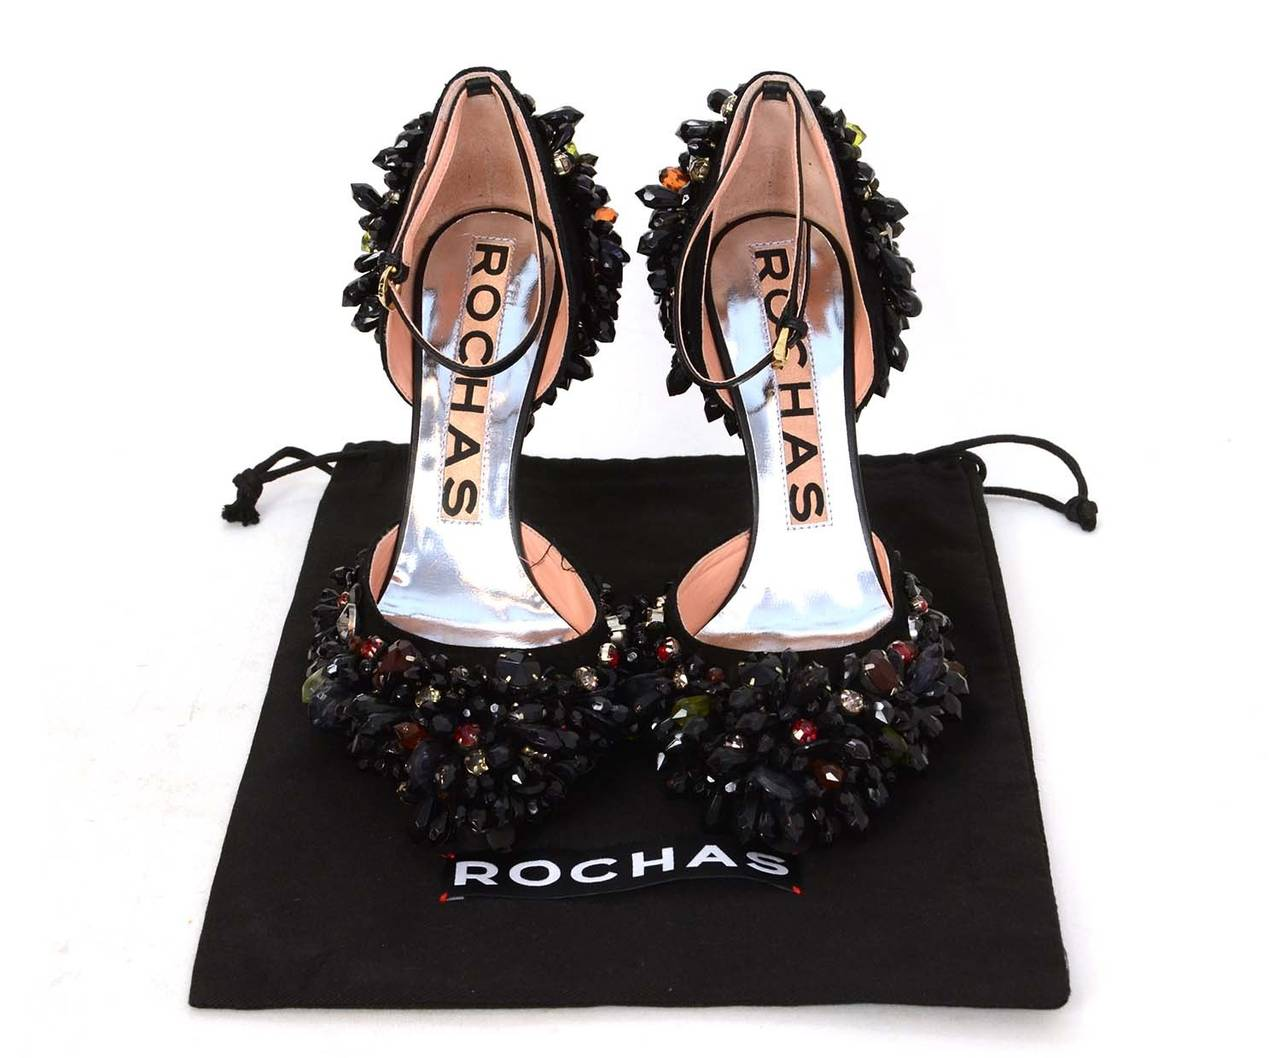 ROCHAS Black Embellished Pointed Toe Pumps sz 39 rt. $2,075 8